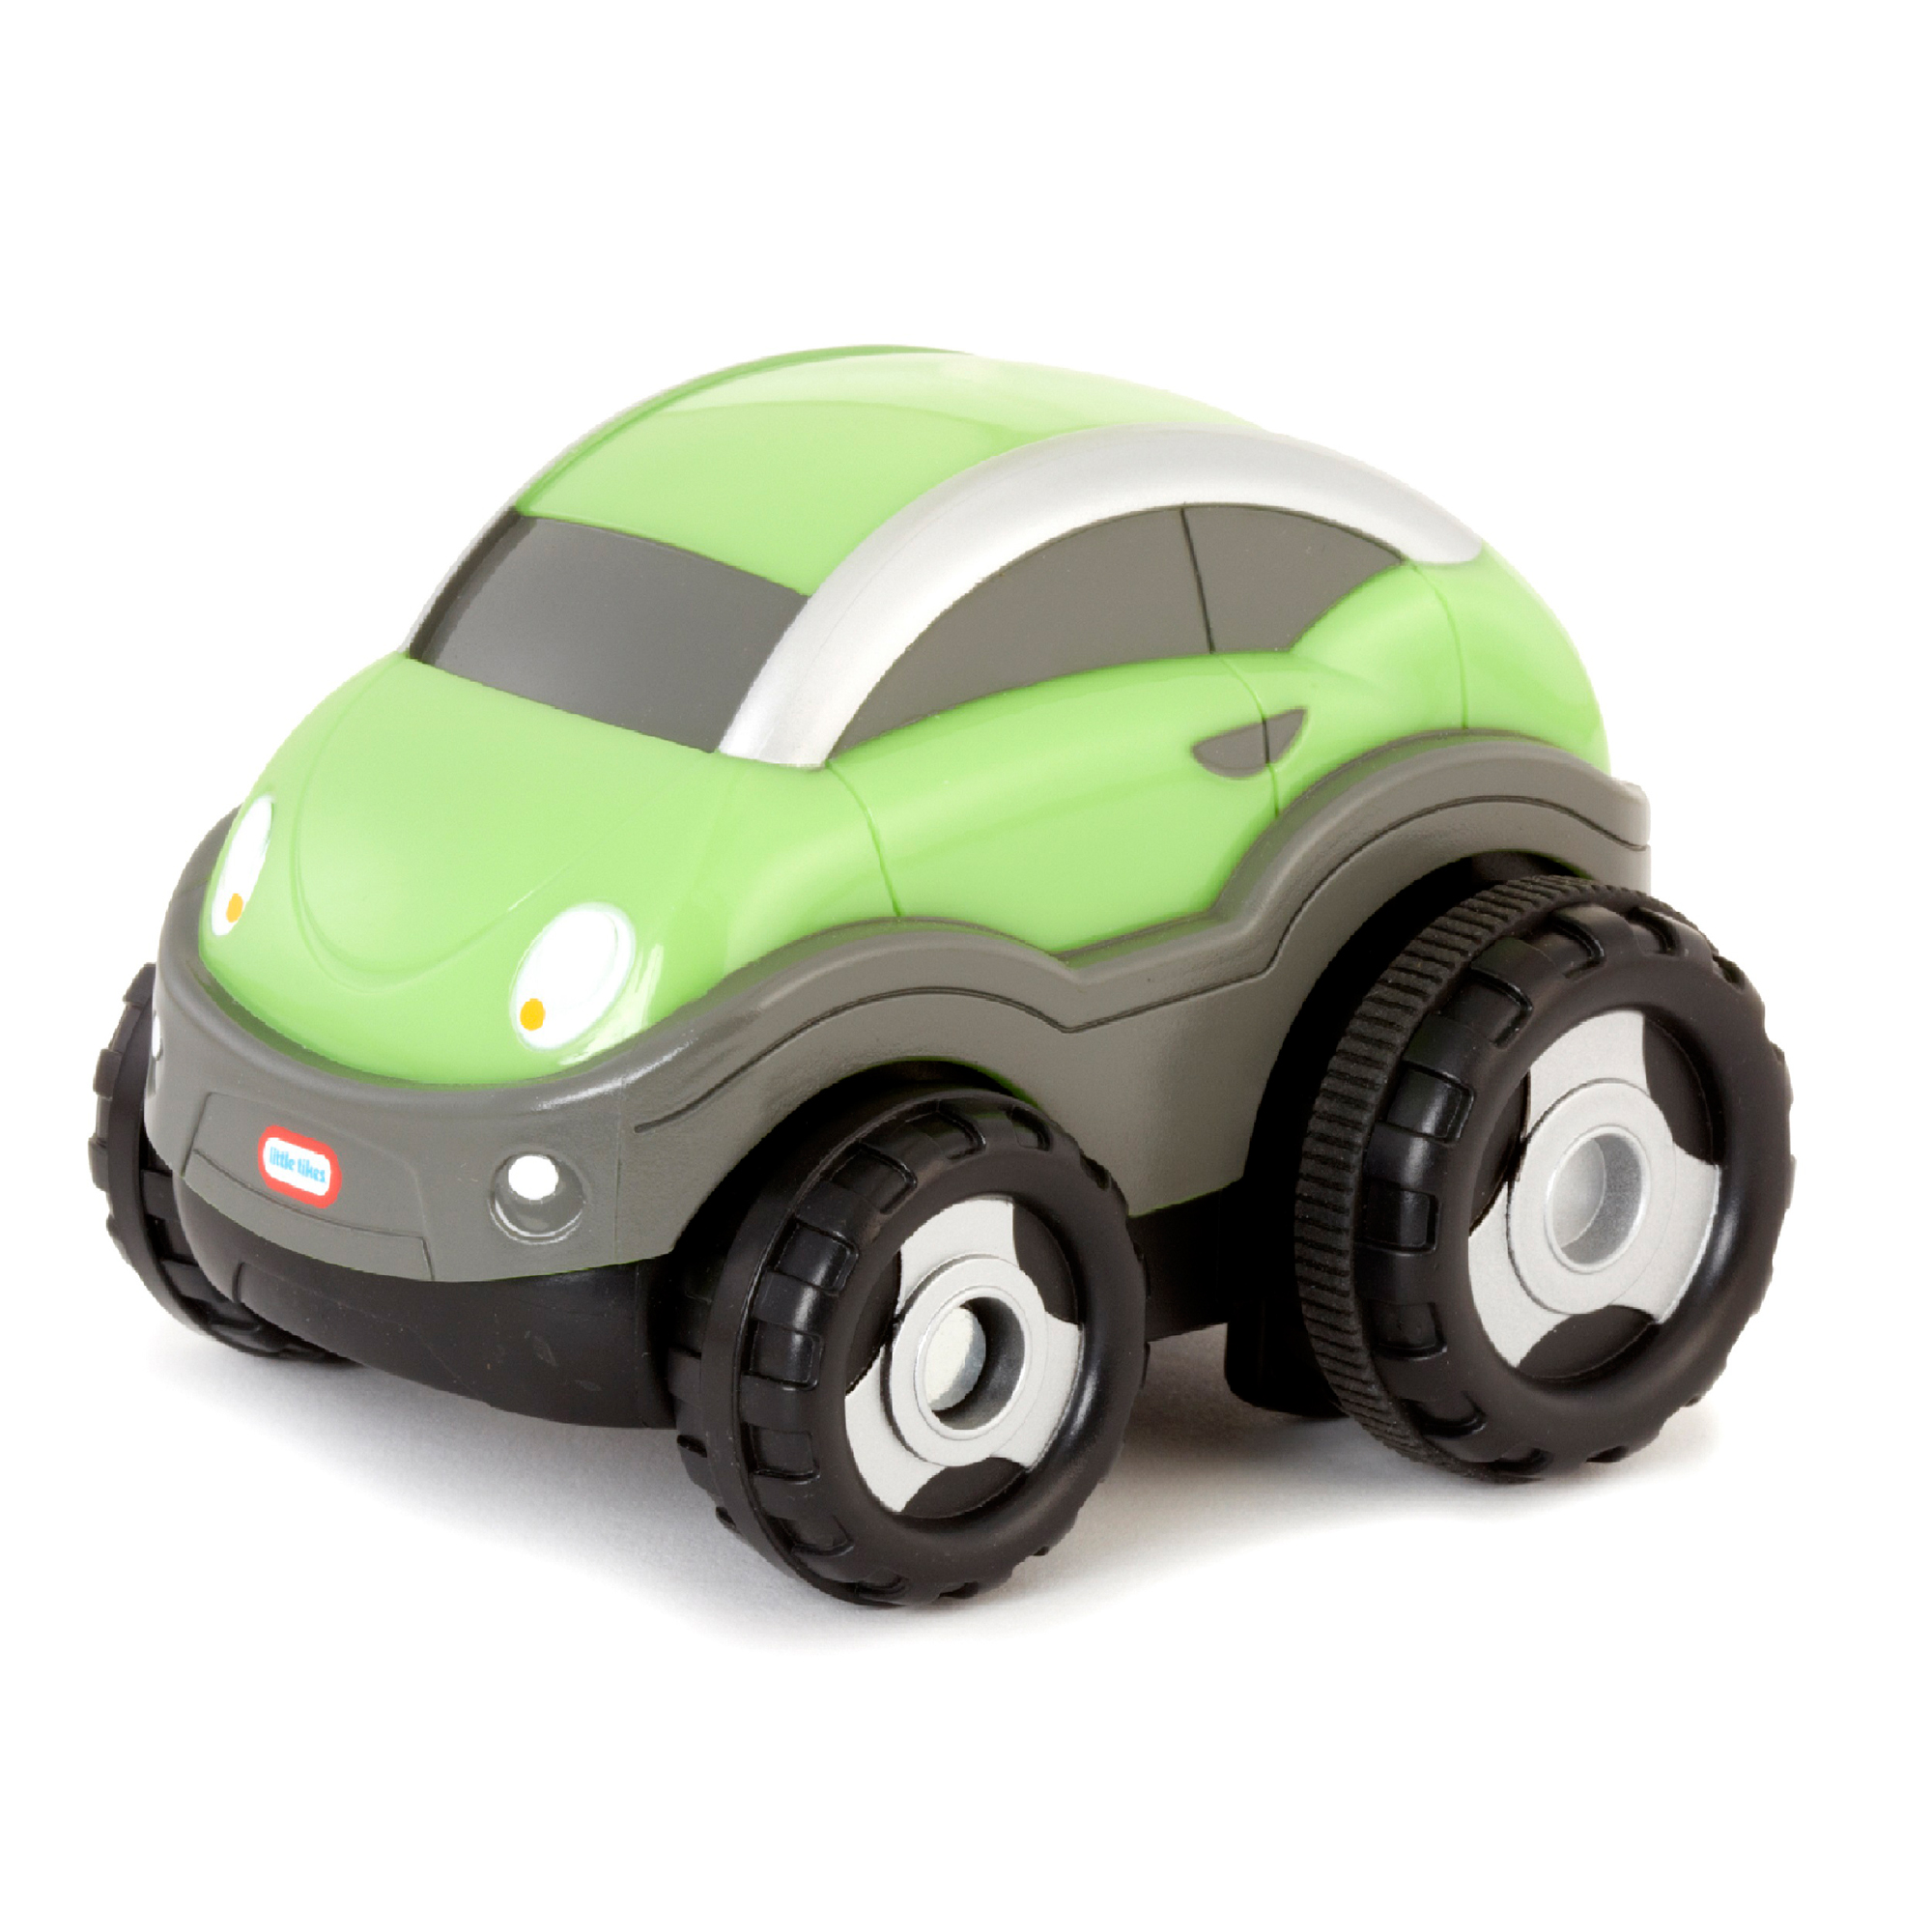 Little Tikes Stunt Cars, Tumble Bug